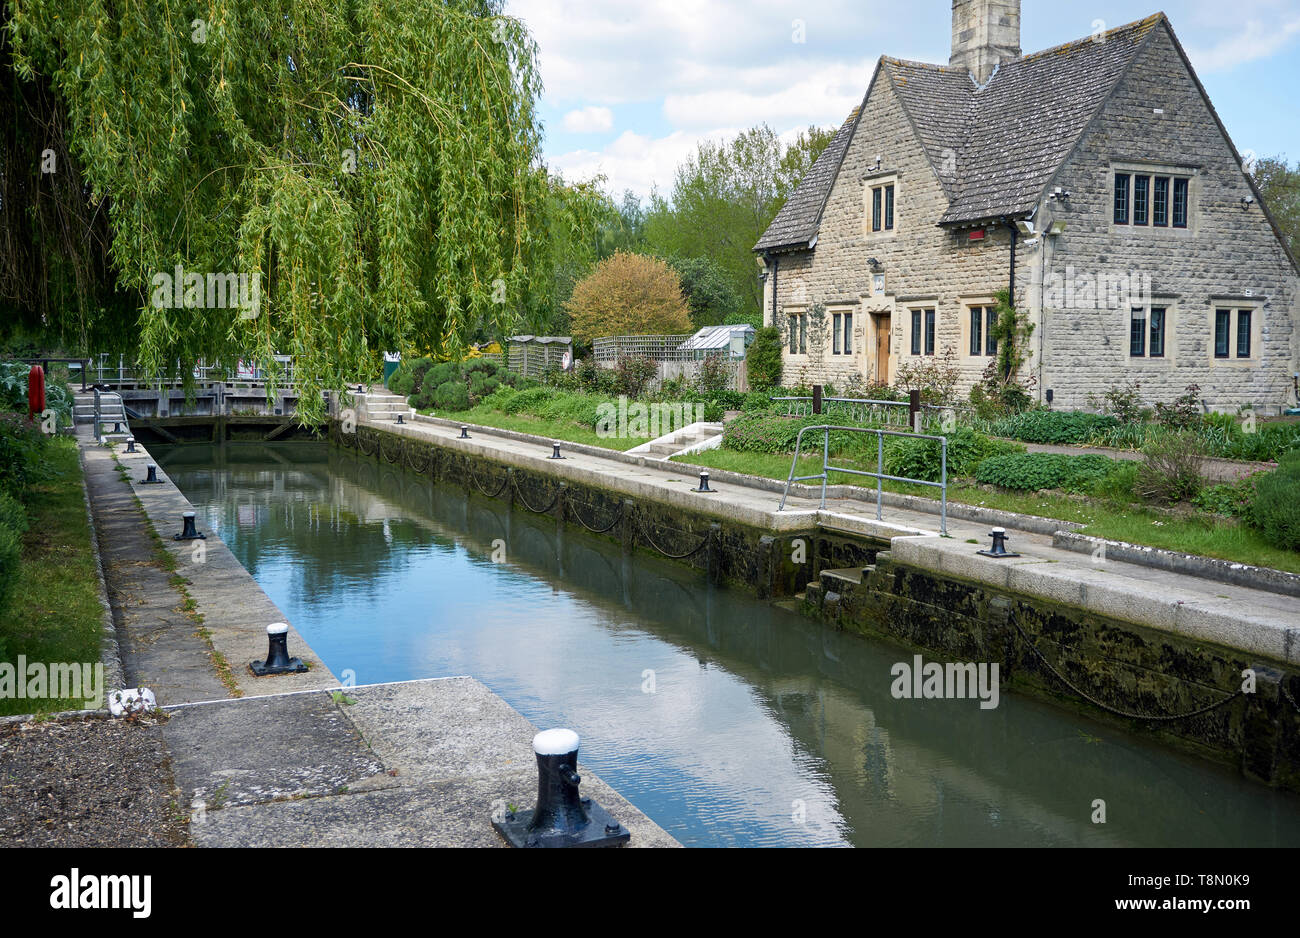 Iffley Lock and lock-keeper's cottage on the River Thames at Iffley Village, near Oxford, UK - Stock Image